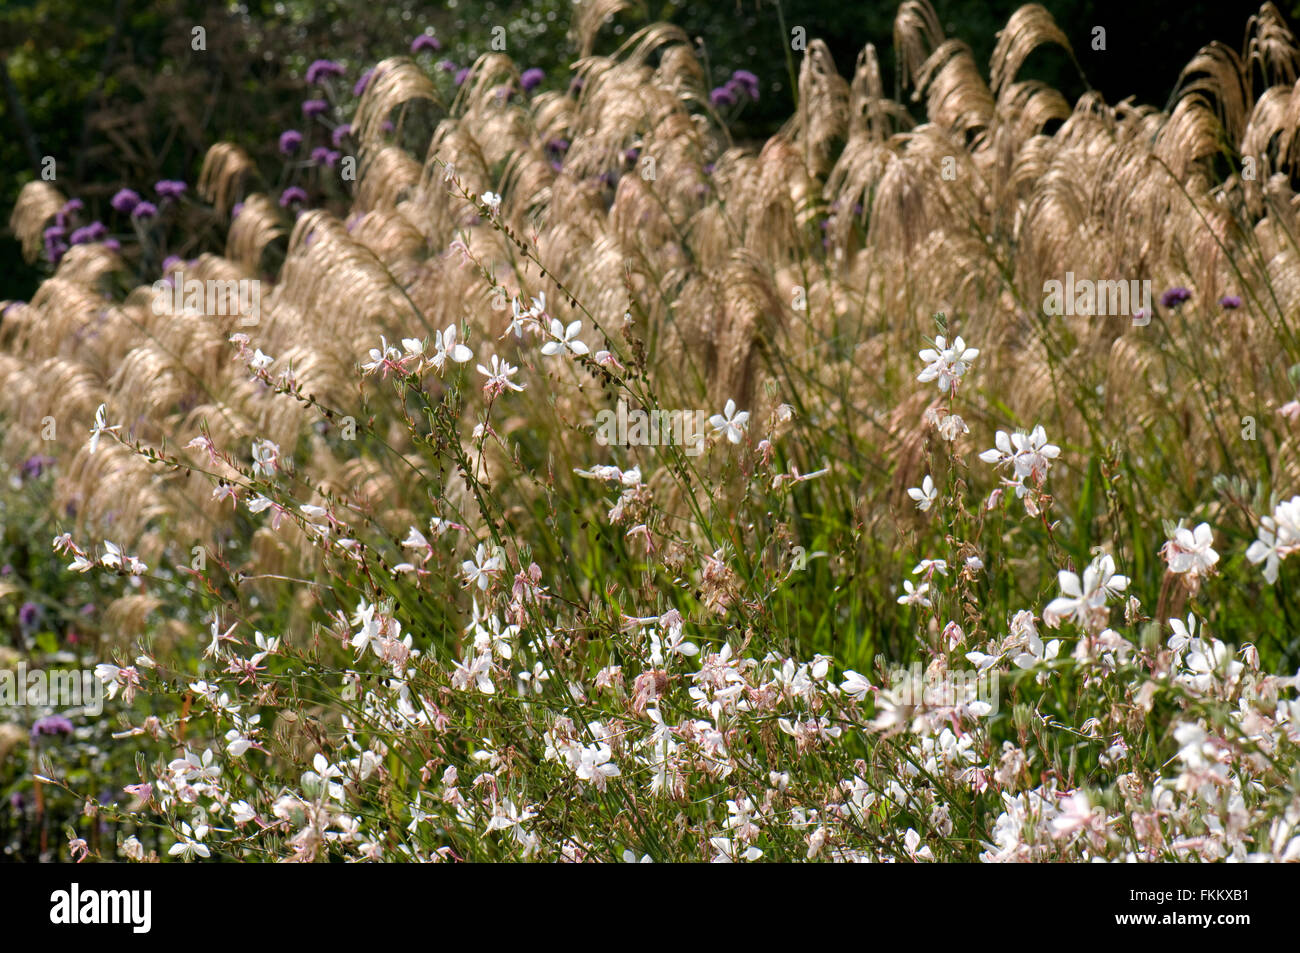 Gaura lindheimeri 'Whirling Butterflies' with Miscanthus nepalensis. Sir Harold Hillier Gardens, Romsey, UK. Stock Photo